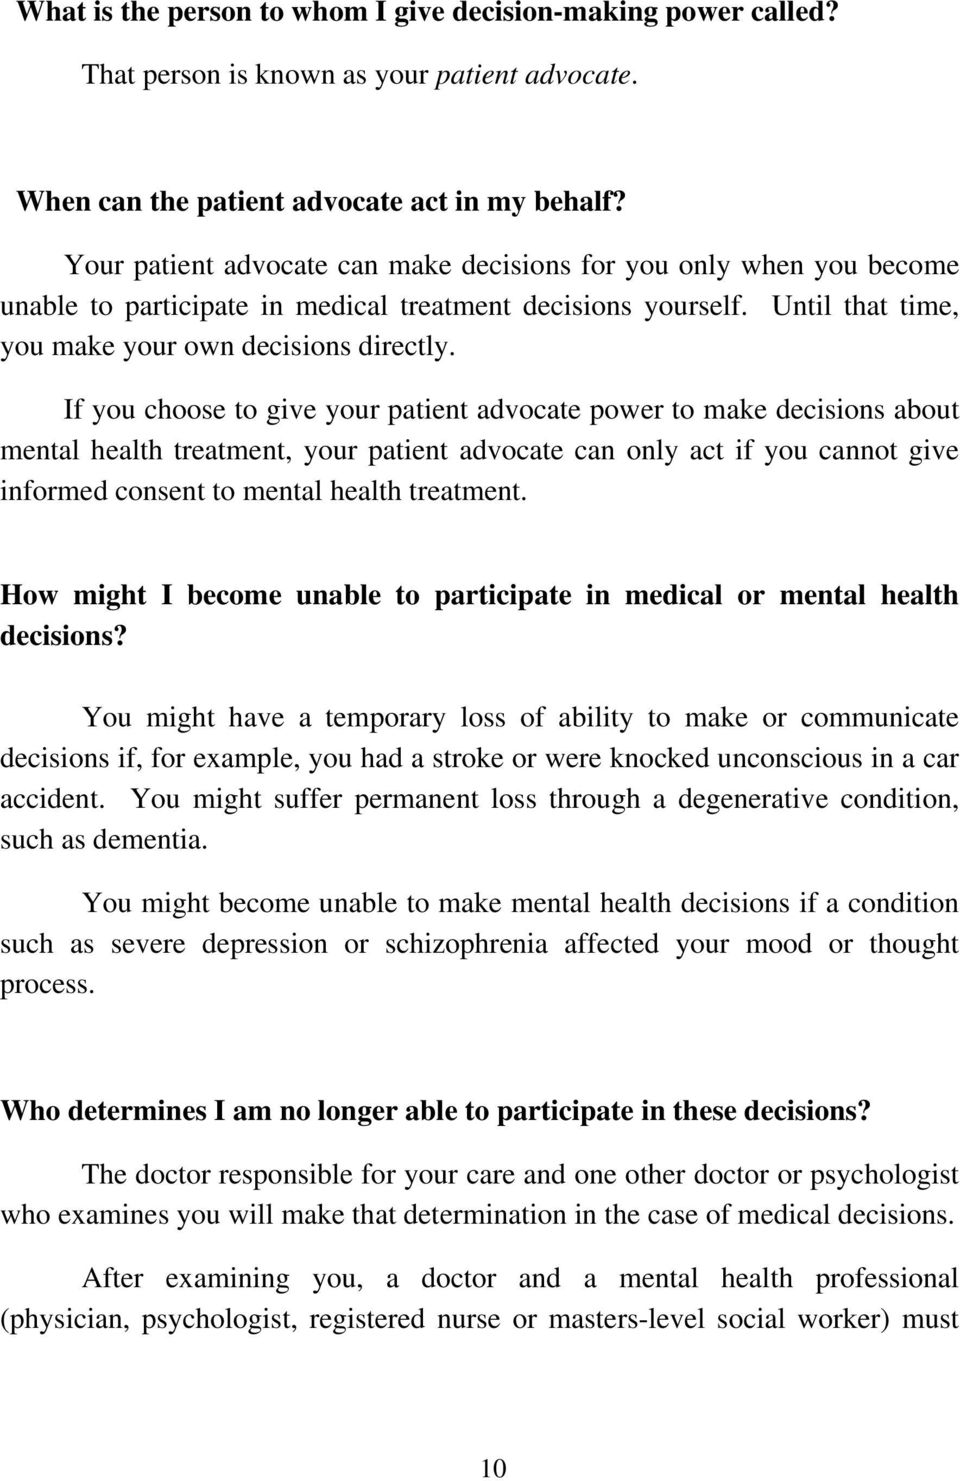 If you choose to give your patient advocate power to make decisions about mental health treatment, your patient advocate can only act if you cannot give informed consent to mental health treatment.